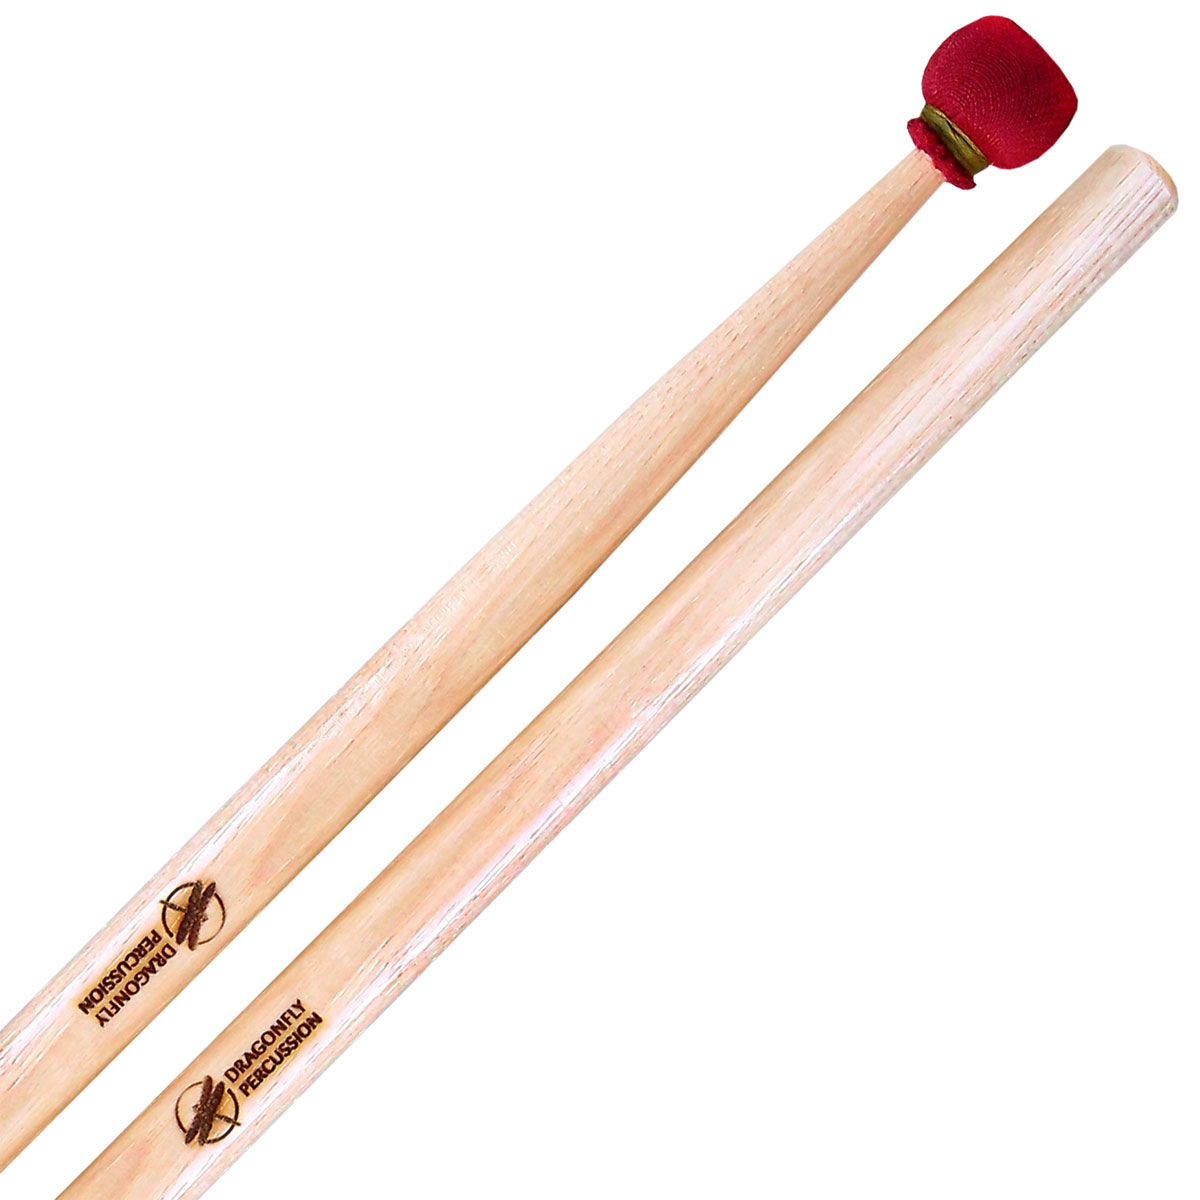 Dragonfly Percussion Hard Suspended Cymbal Mallets with Hickory Handles